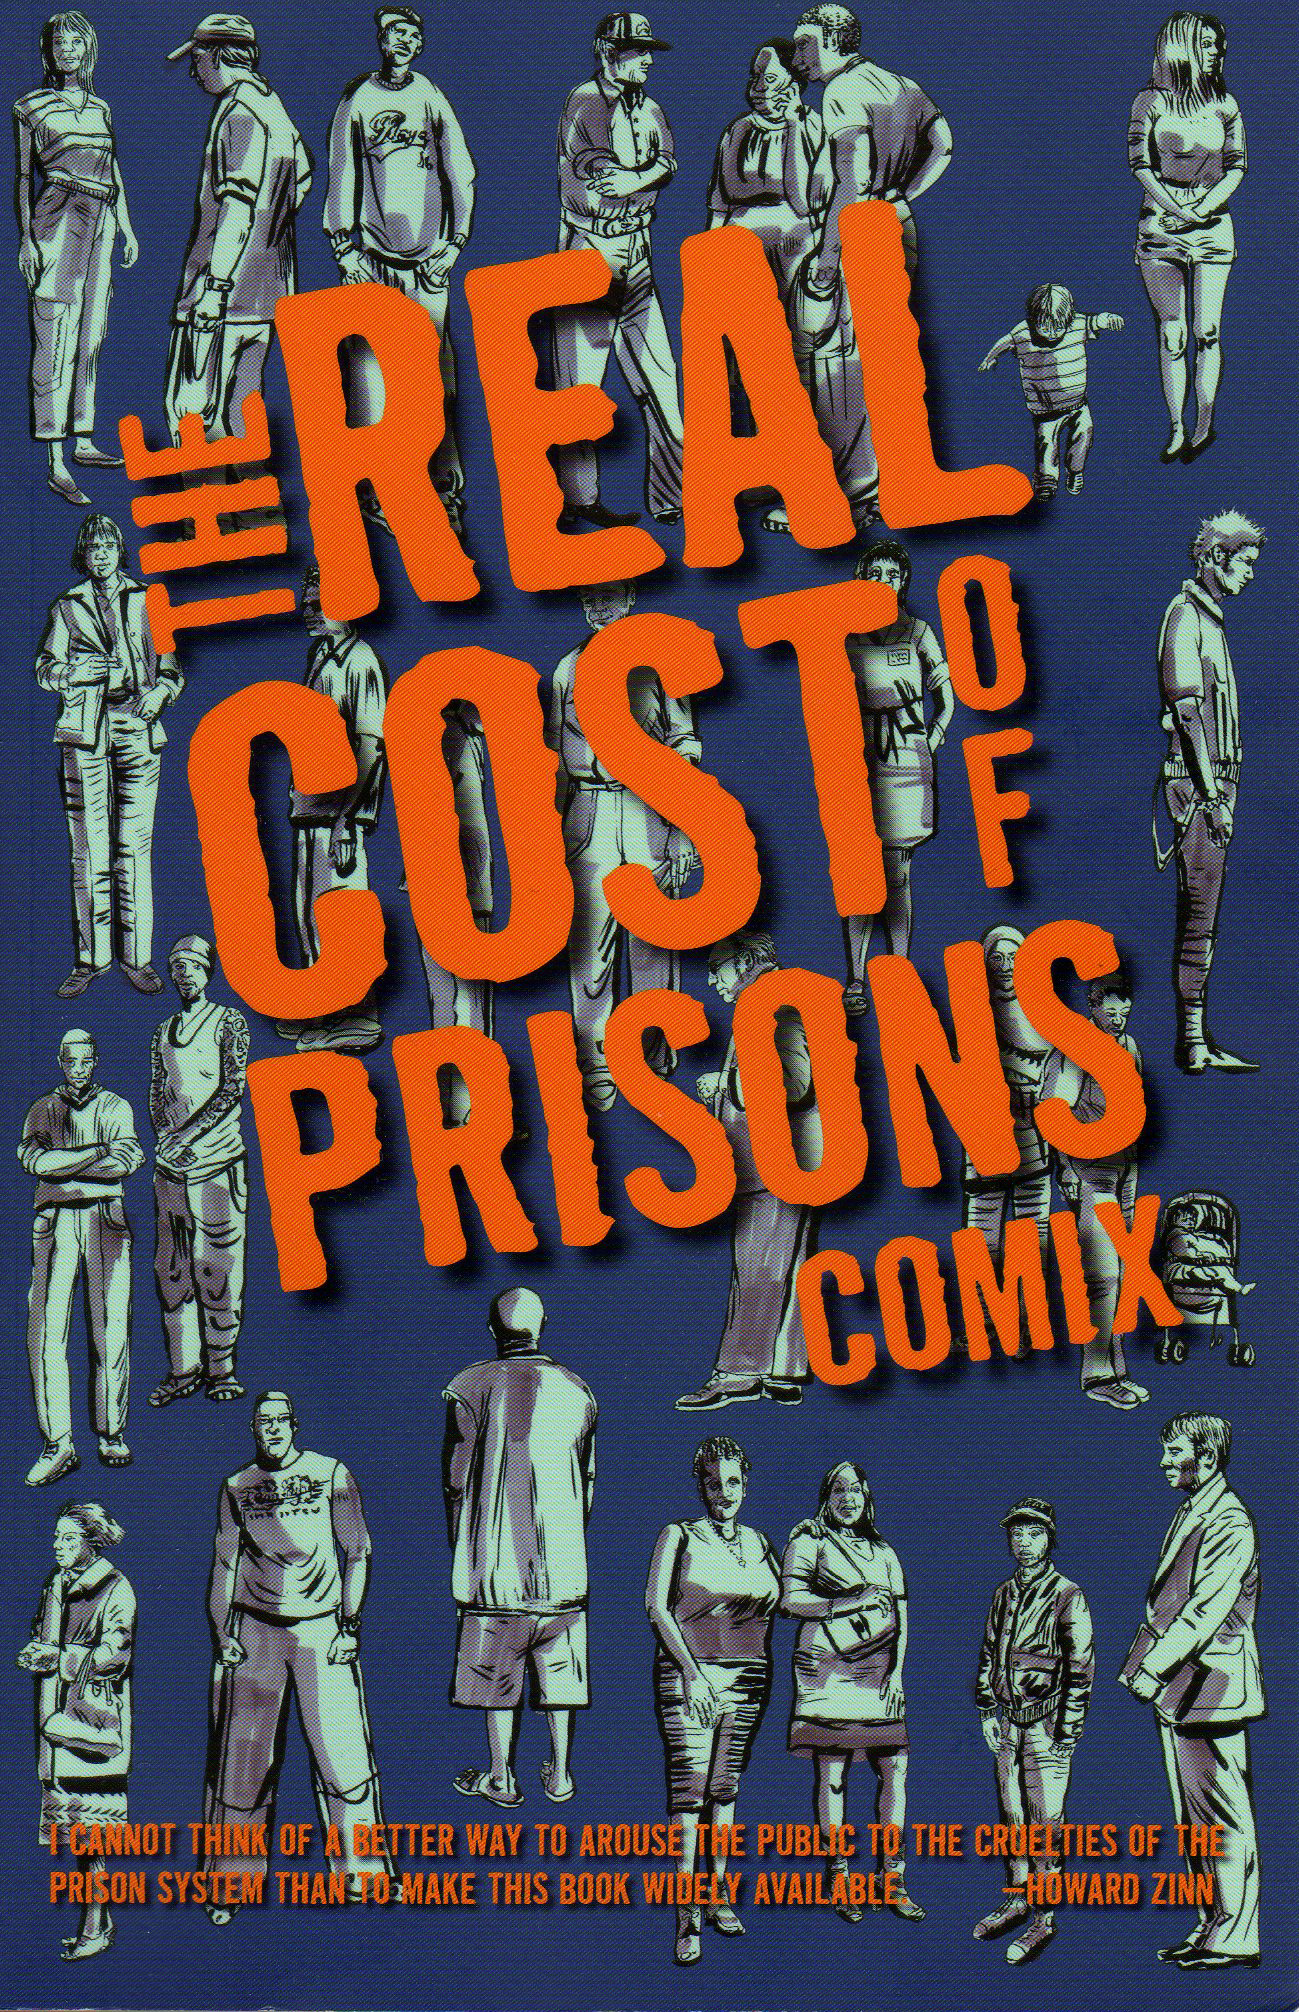 The Real Cost of Prisons Comix by Lois Ahrens.jpg